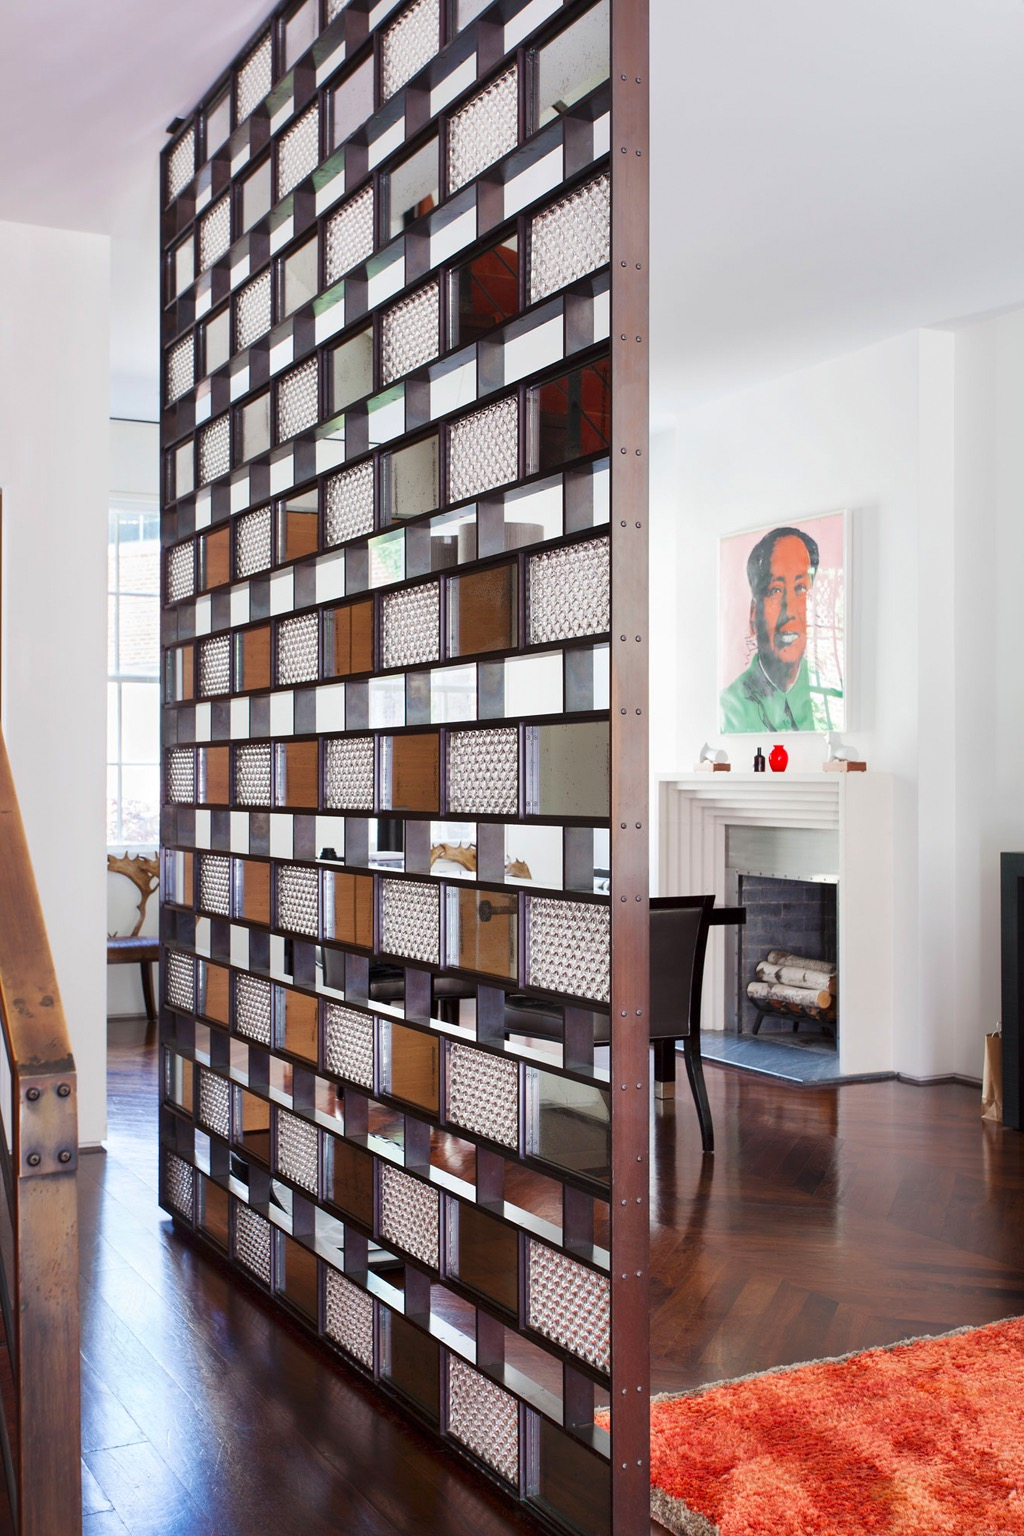 Modern Wooden Room Divider With Textured Glass Bricks (View 9 of 14)